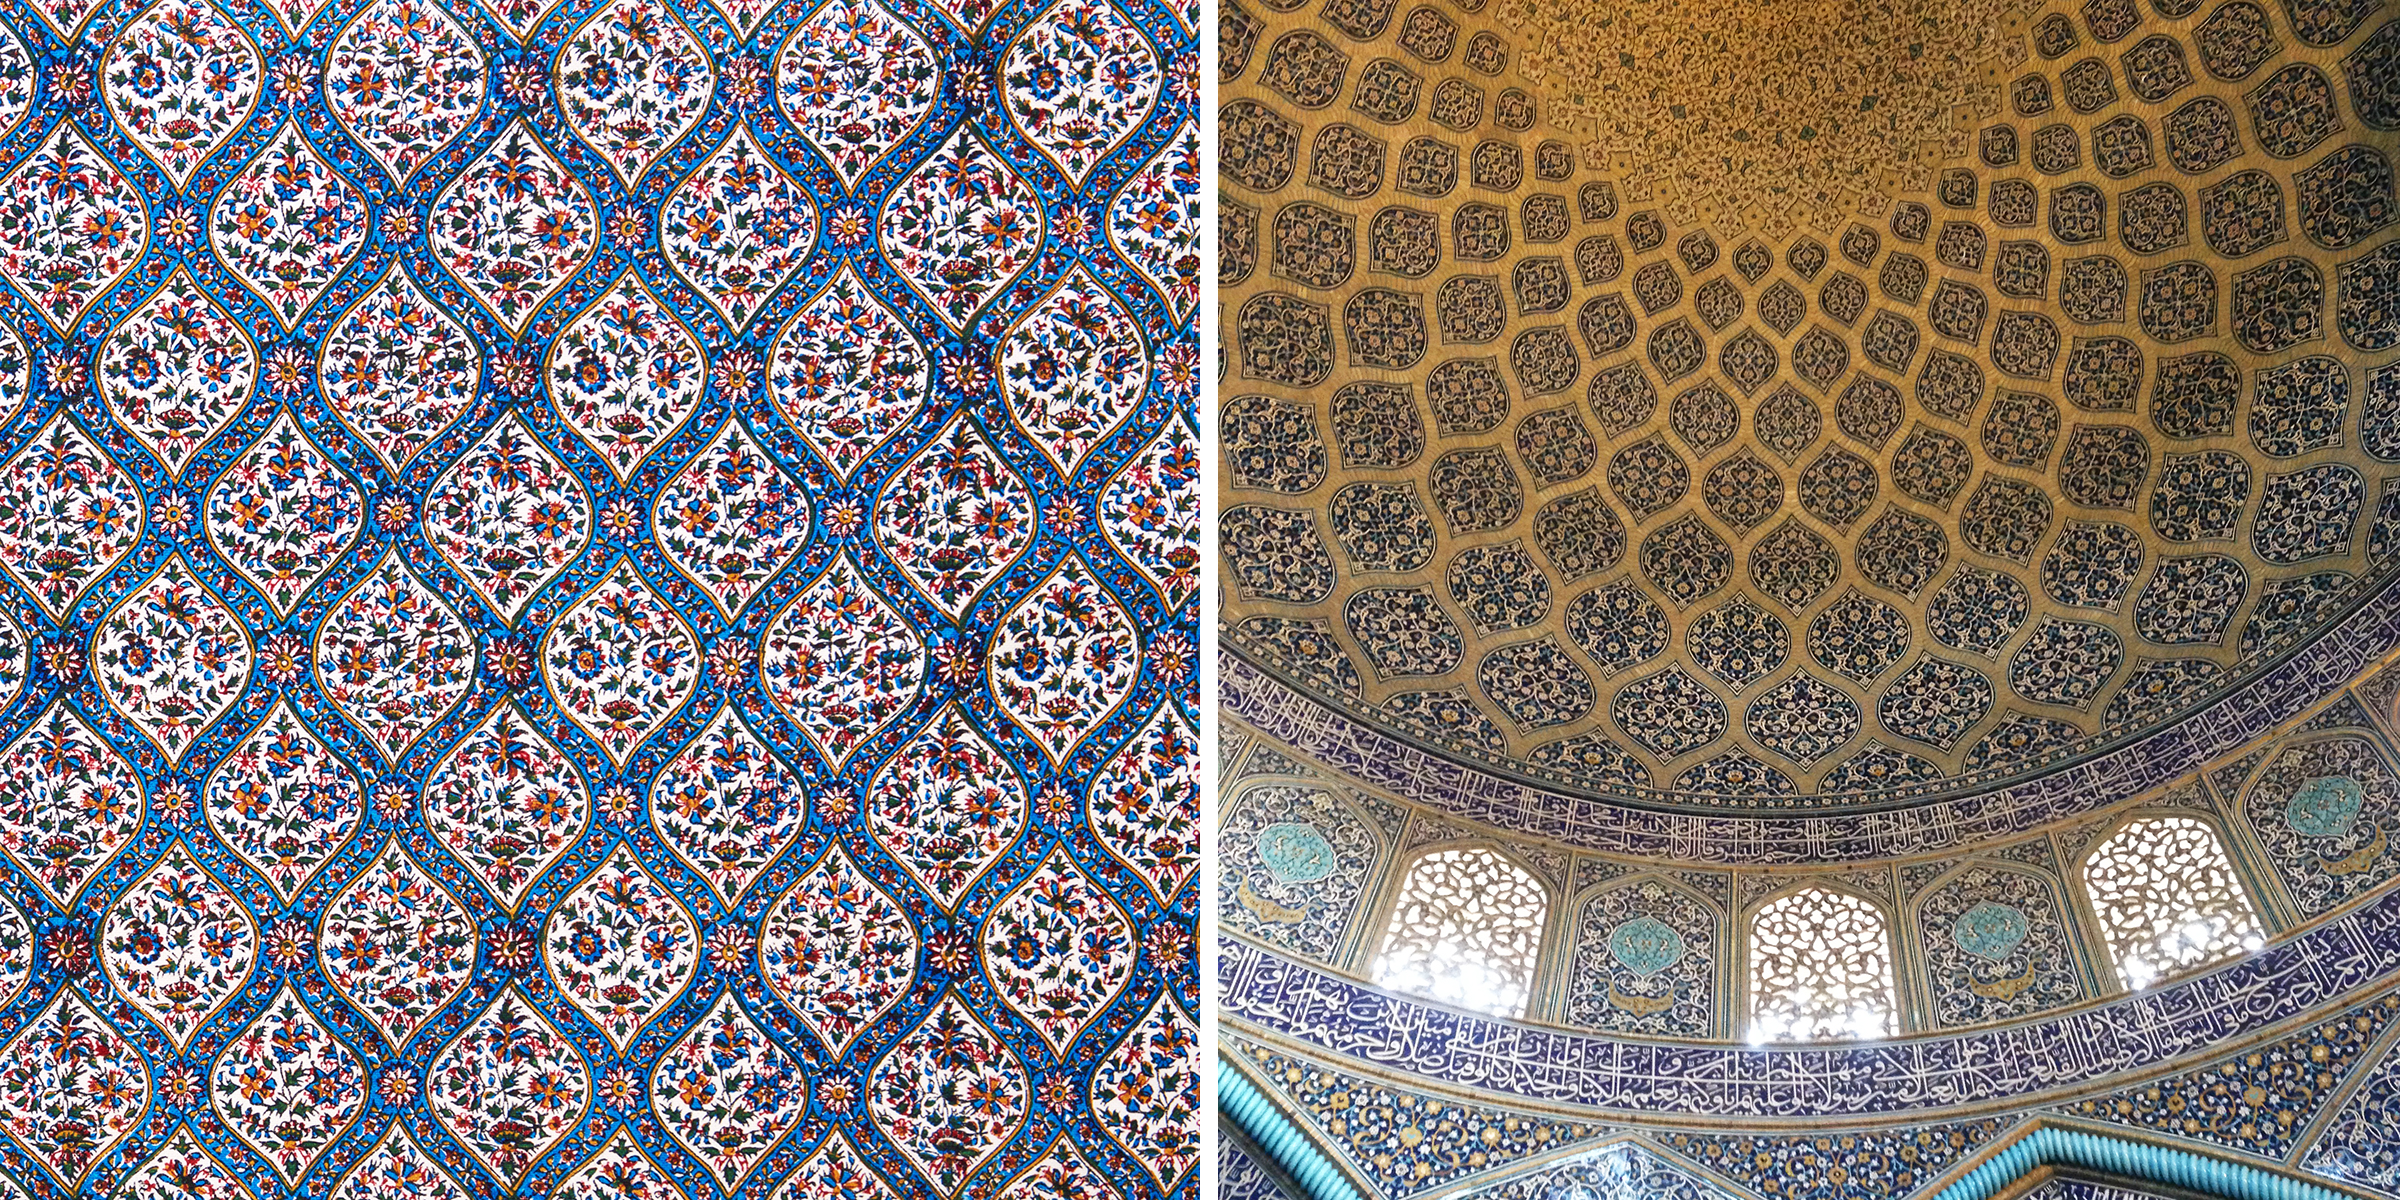 The floral lattice pattern as seen in the popular 'Gonbadi' design and the original design on the Jameh Mosque, Esfahan.